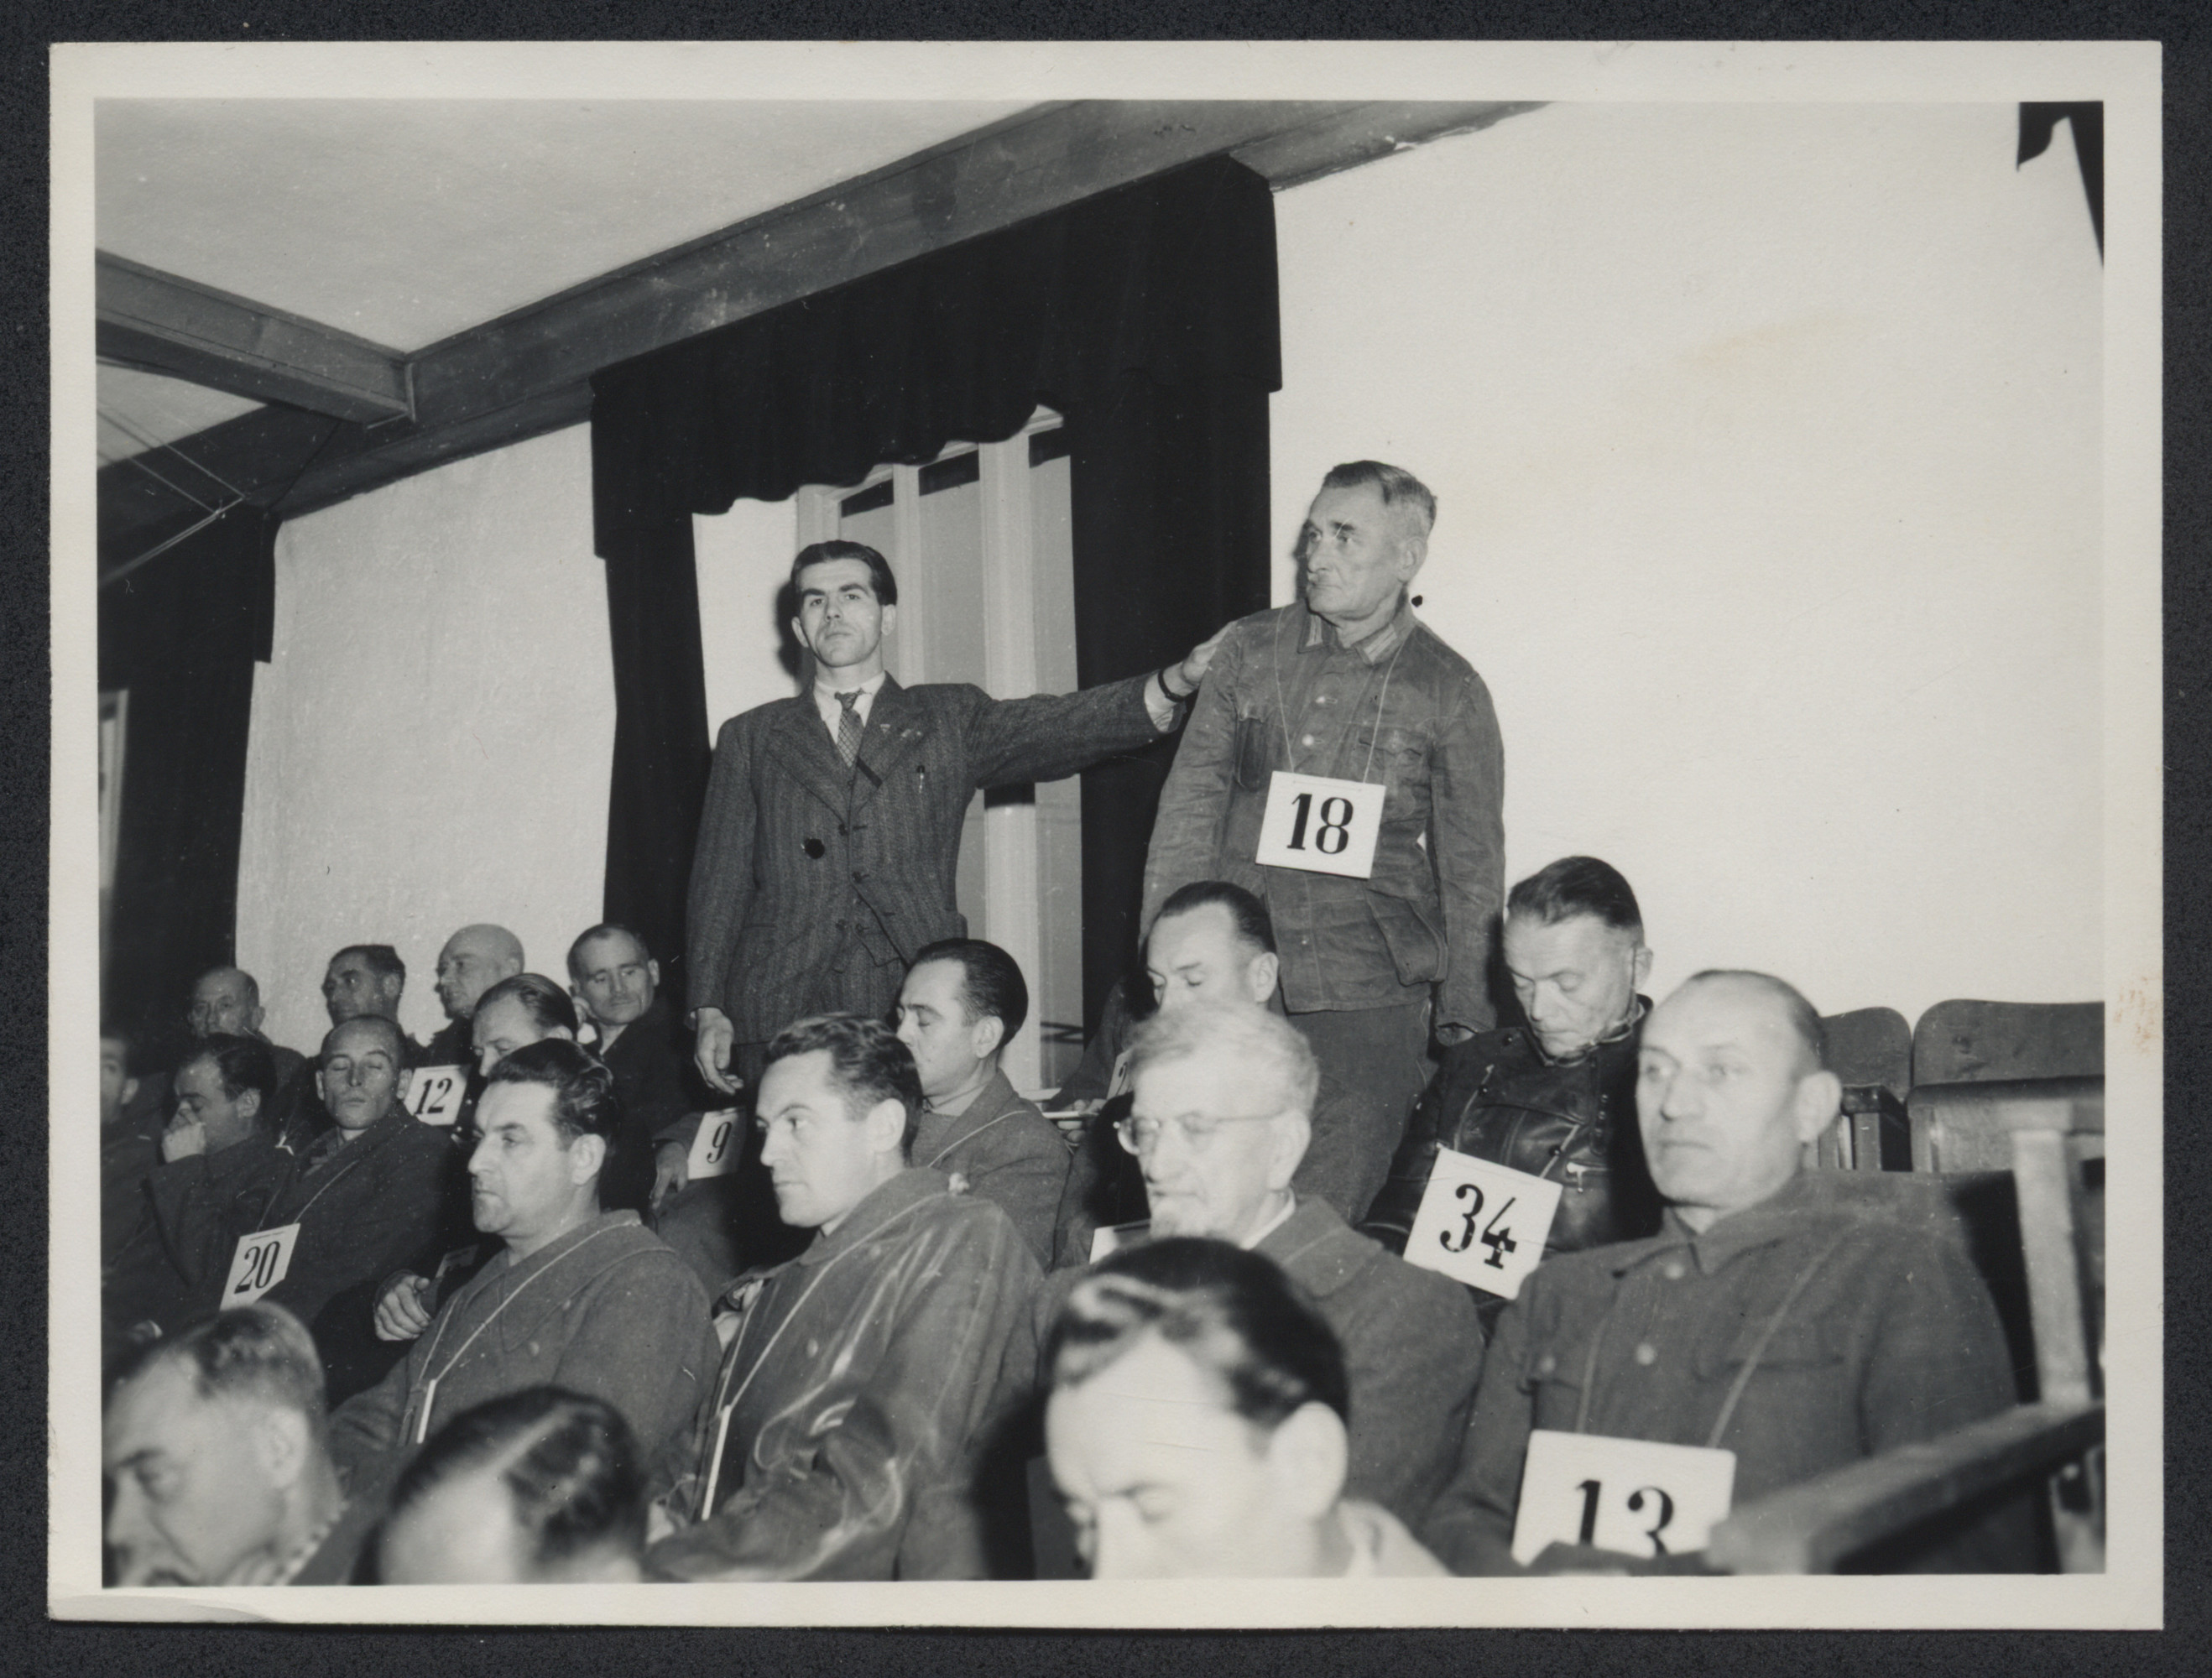 Prosecution witness Michael Pellis, a former inmate at Dachau, identifies SS Hauptscharfuerher Franz Boettger at the Dachau trial.    Also pictured are defendants Walter Adolf Langleist (#34), Otto Foerschner (#13), Anton Endres (#20), Johann Baptist Eichelsdorfer (#12), and Dr. Kalus Schilling (in front of Boettger).